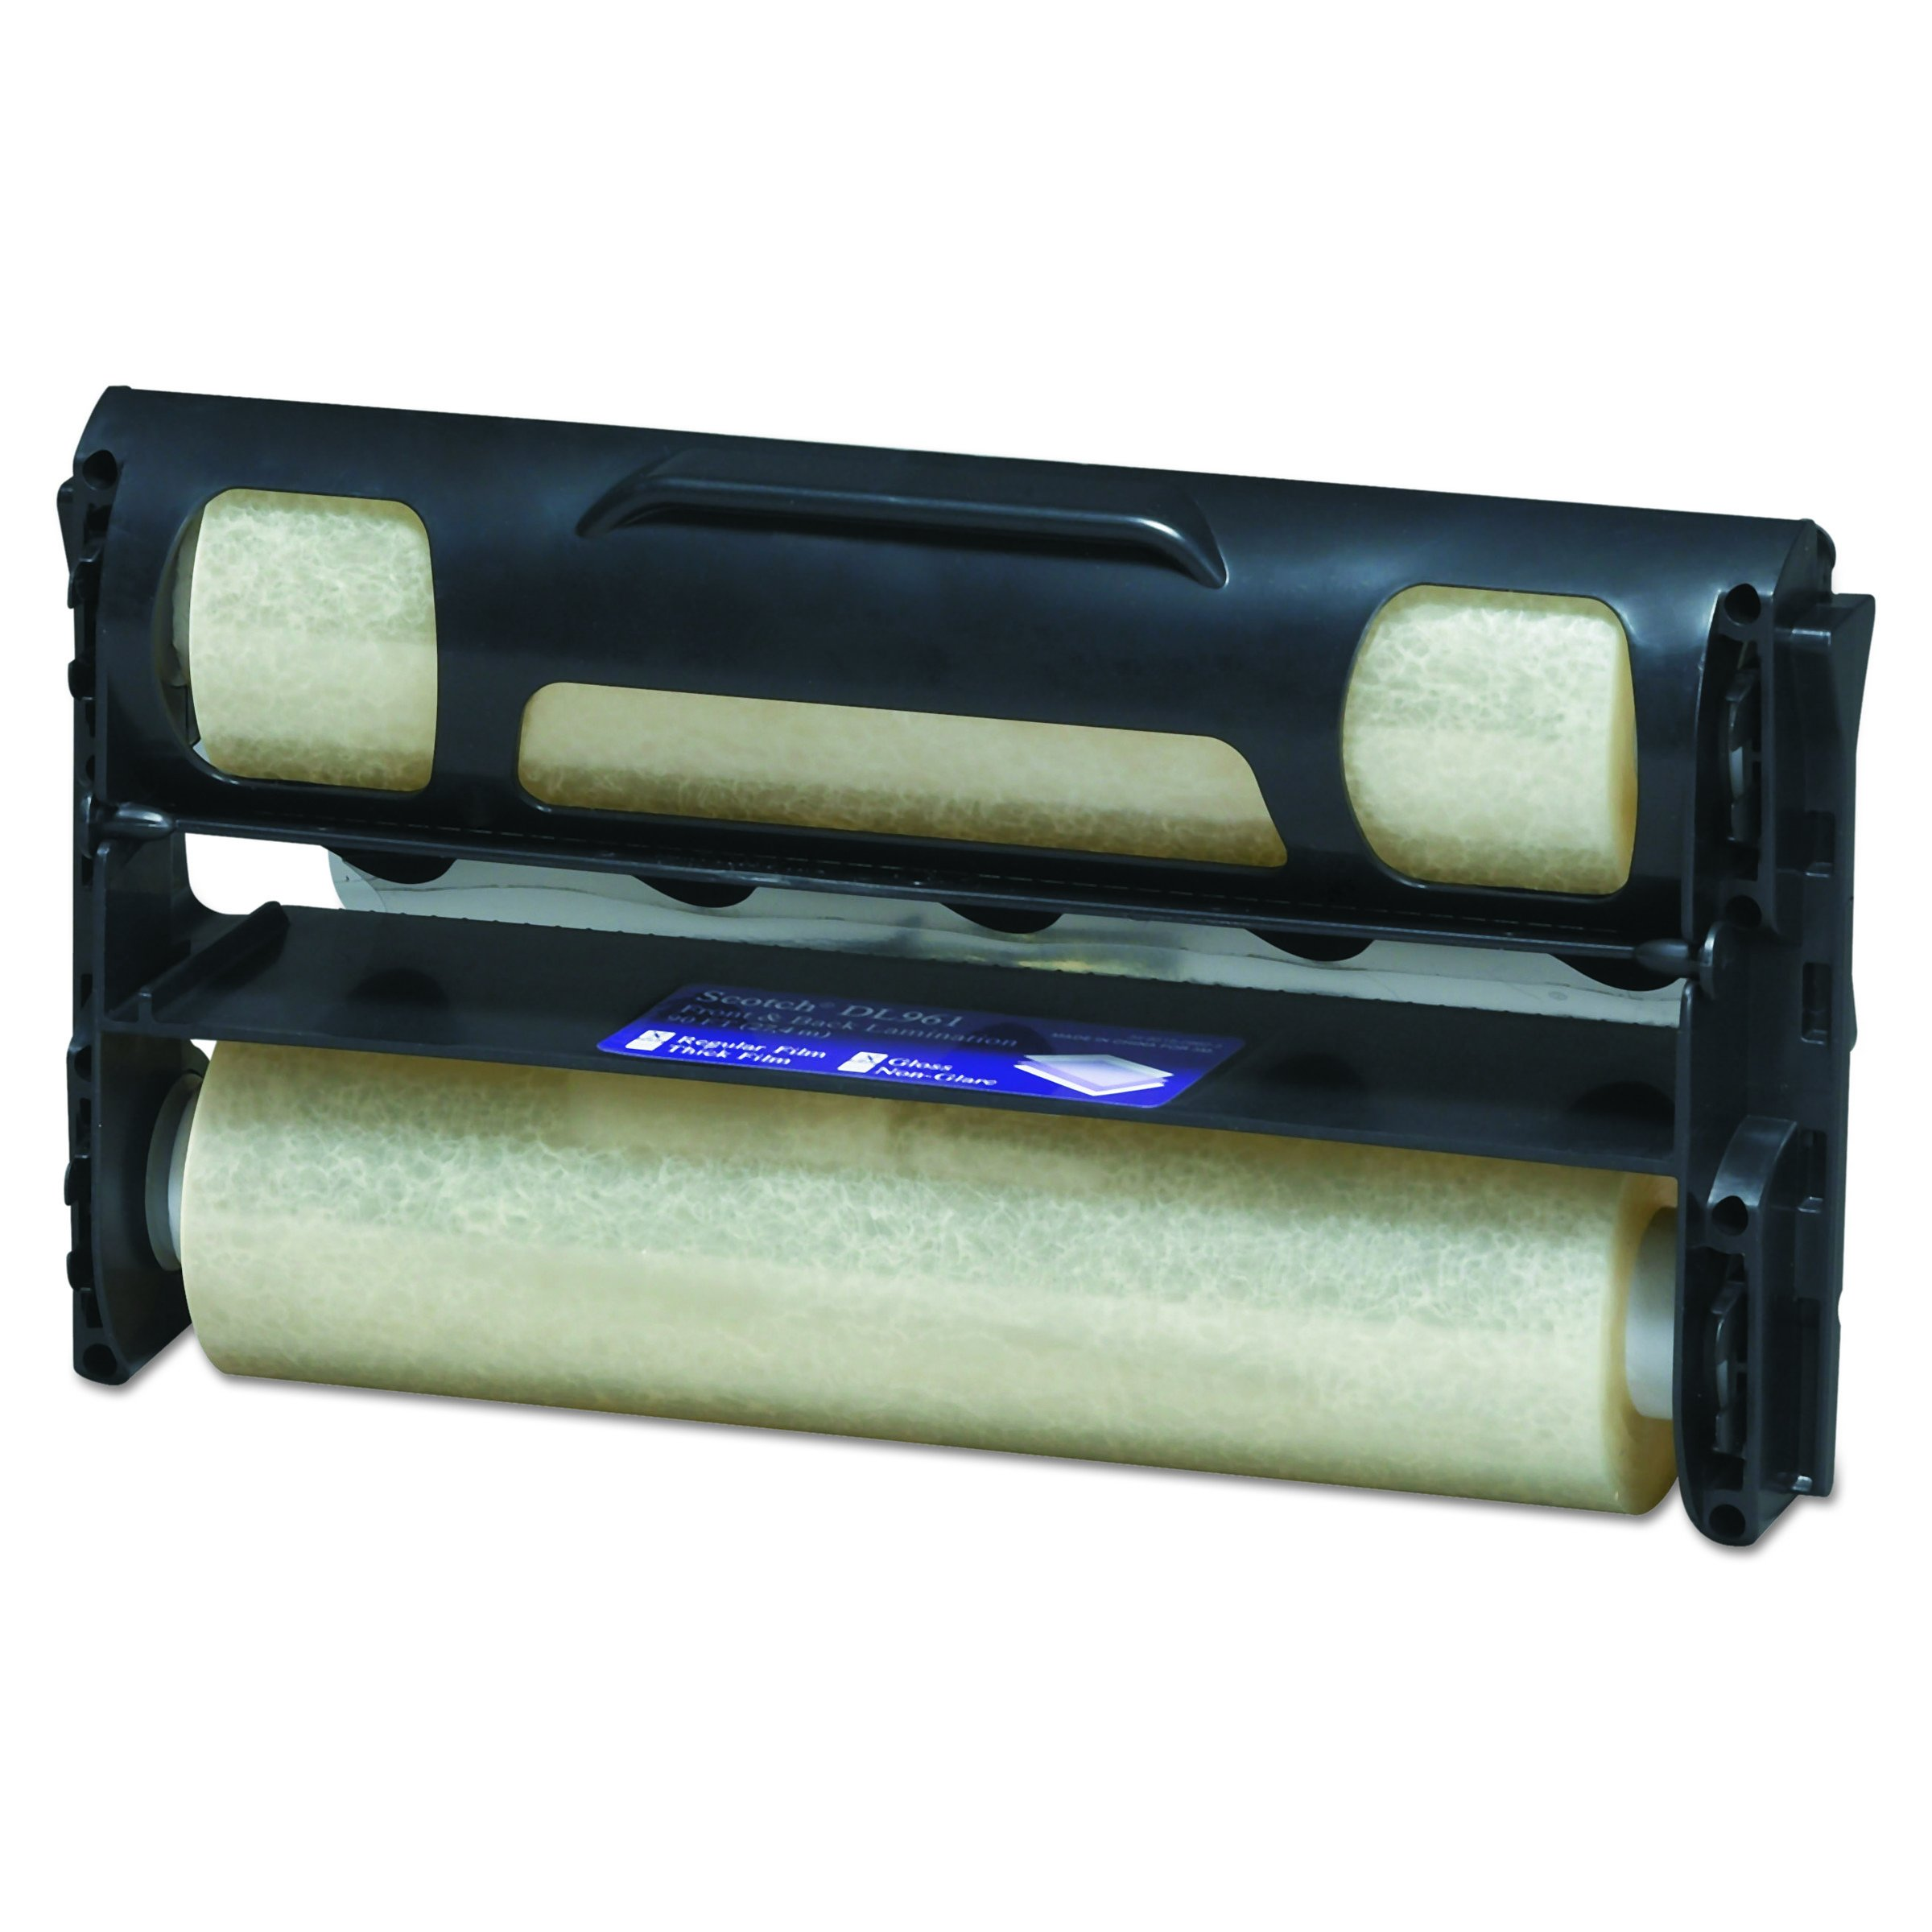 Scotch DL961 Refill Rolls for Heat-Free 9 Laminating Machines, 90 ft. by Scotch Brand